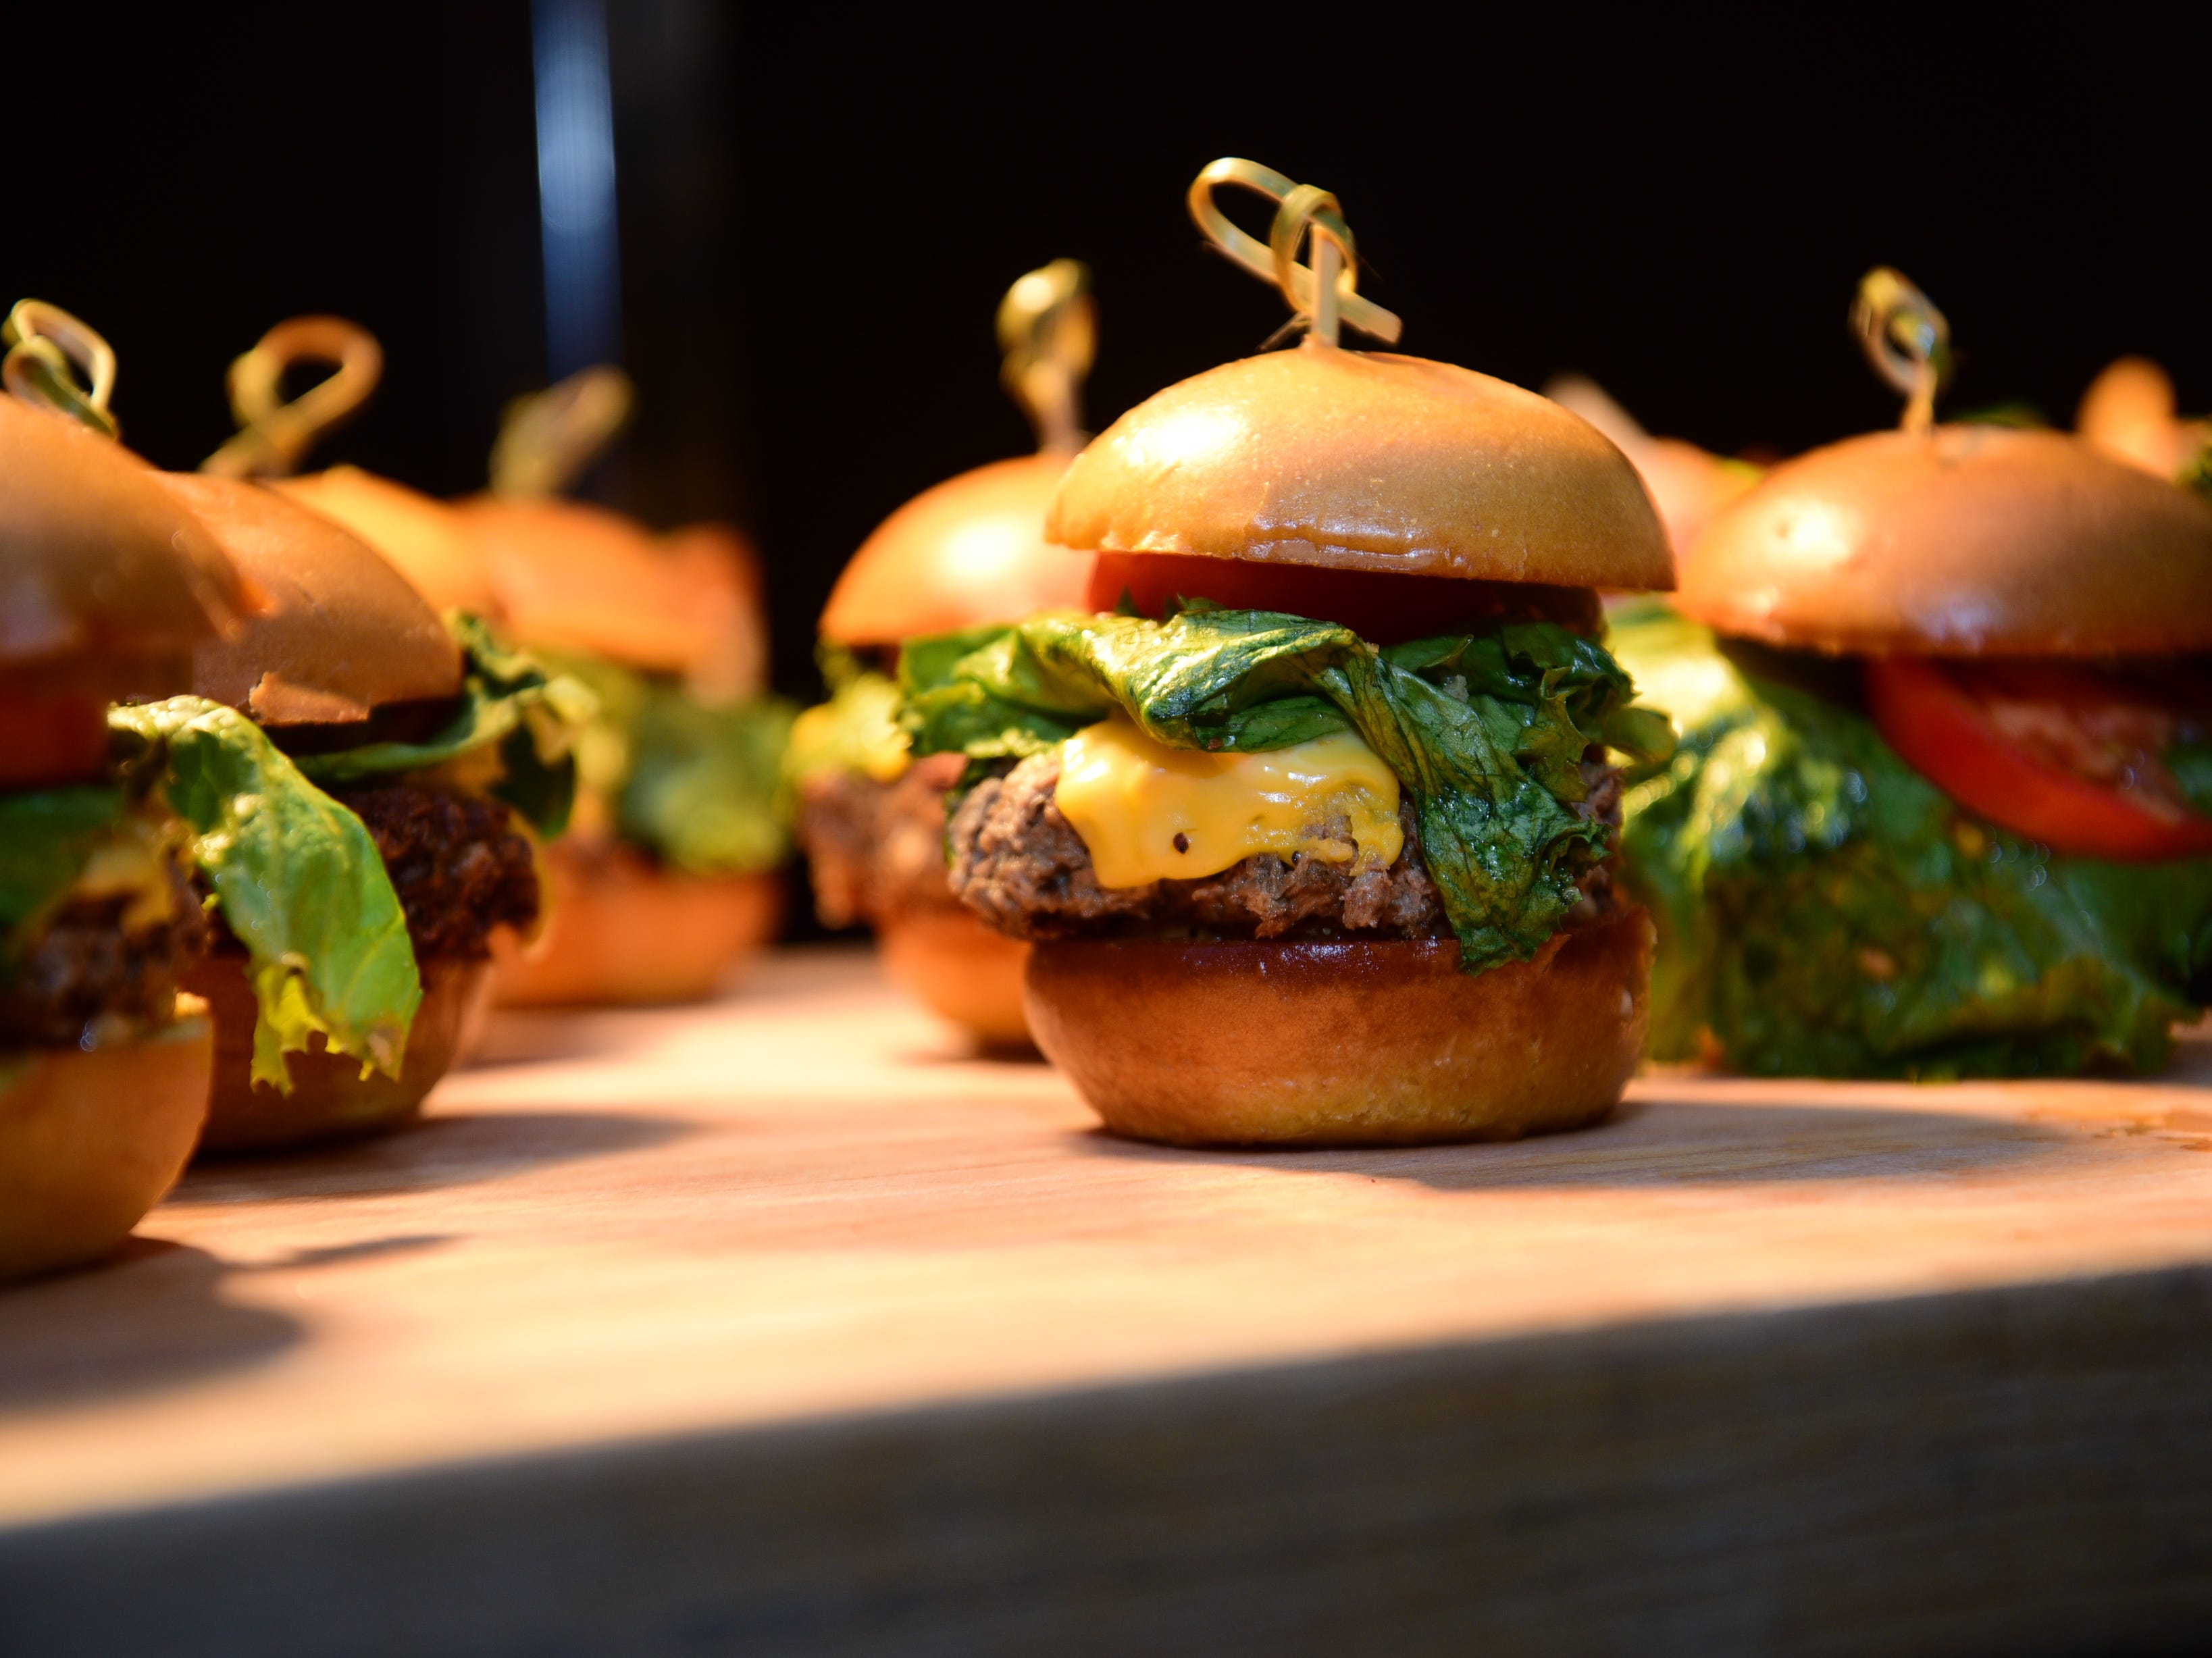 The Impossible Sliders are new items being offered during the Phoenix Suns 2018-2019 season at Talking Stick Resort Arena.